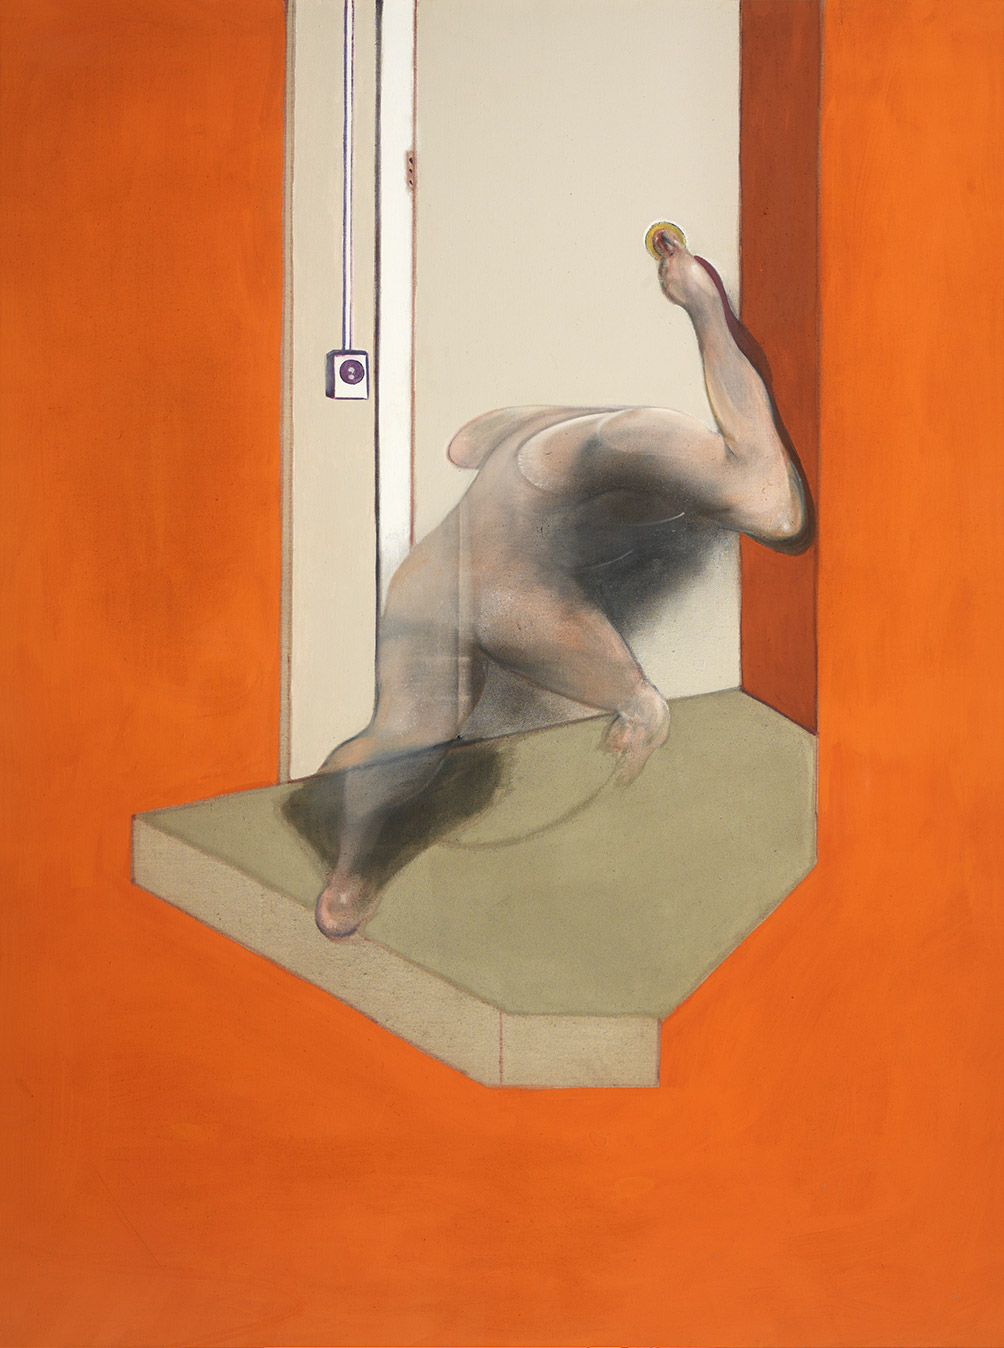 Francis Bacon S Entire Oeuvre To Be Published For The